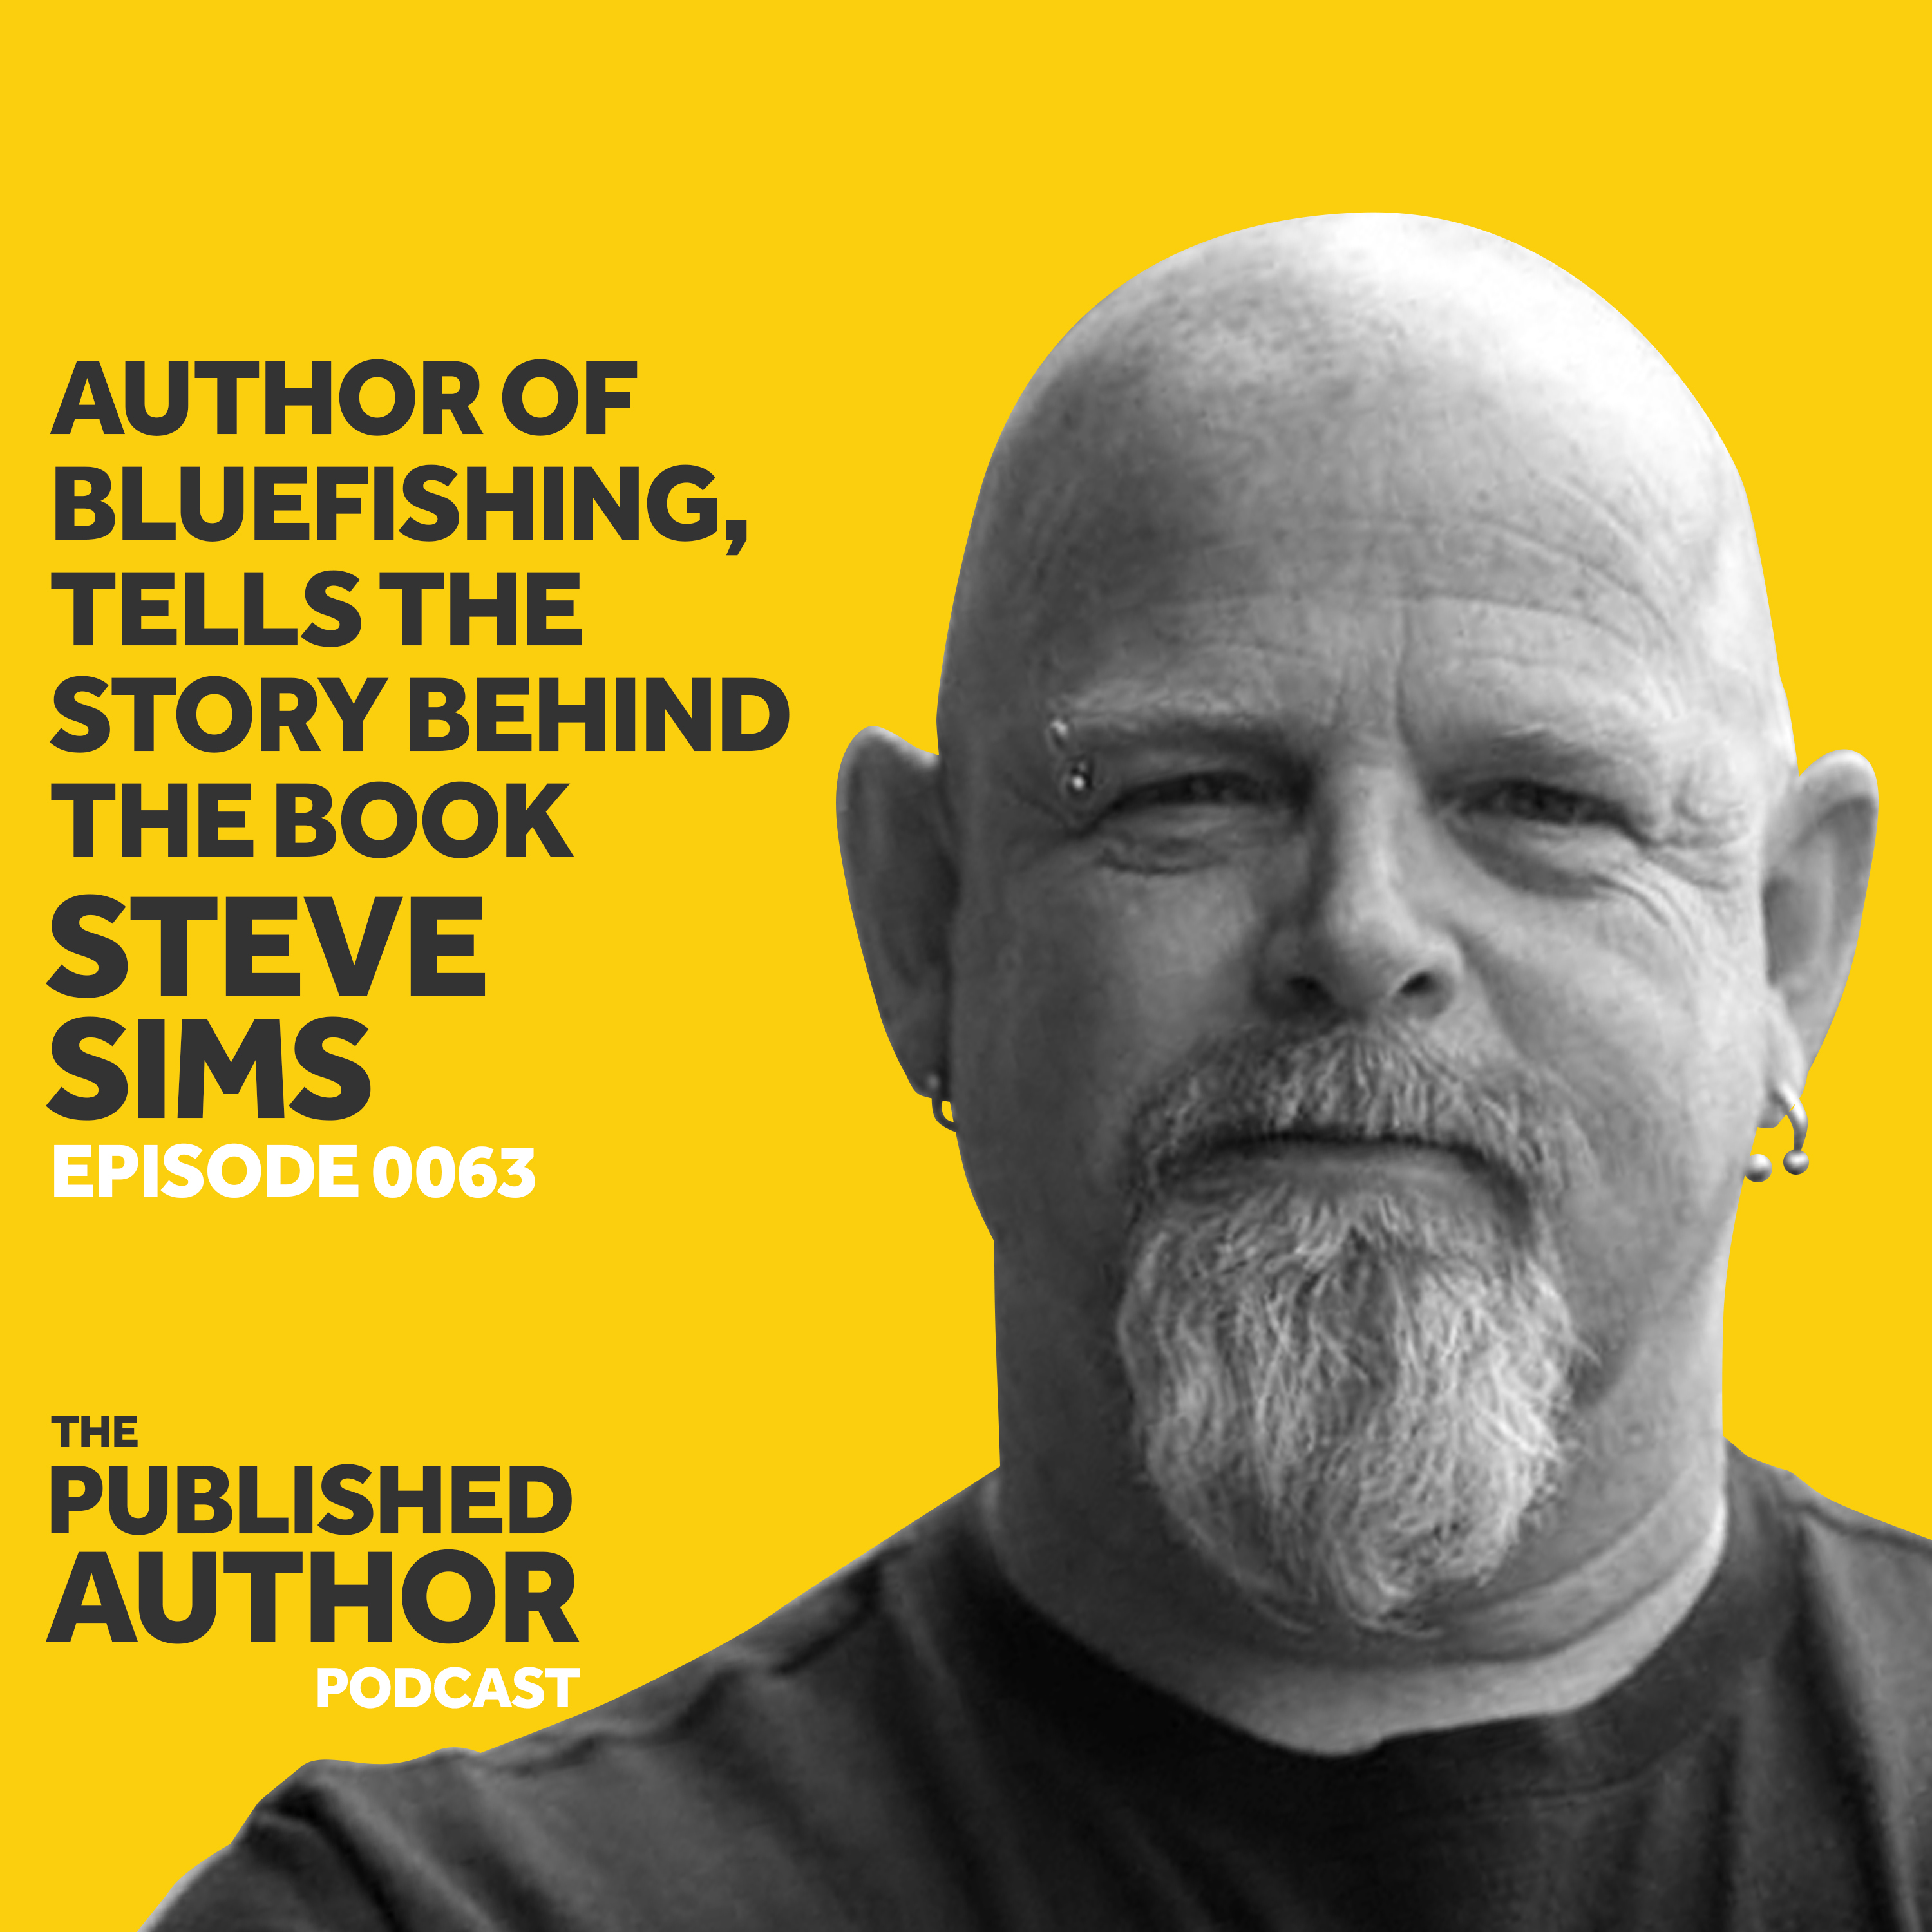 Steve Sims, Author of Bluefishing, Tells The Story Behind The Book